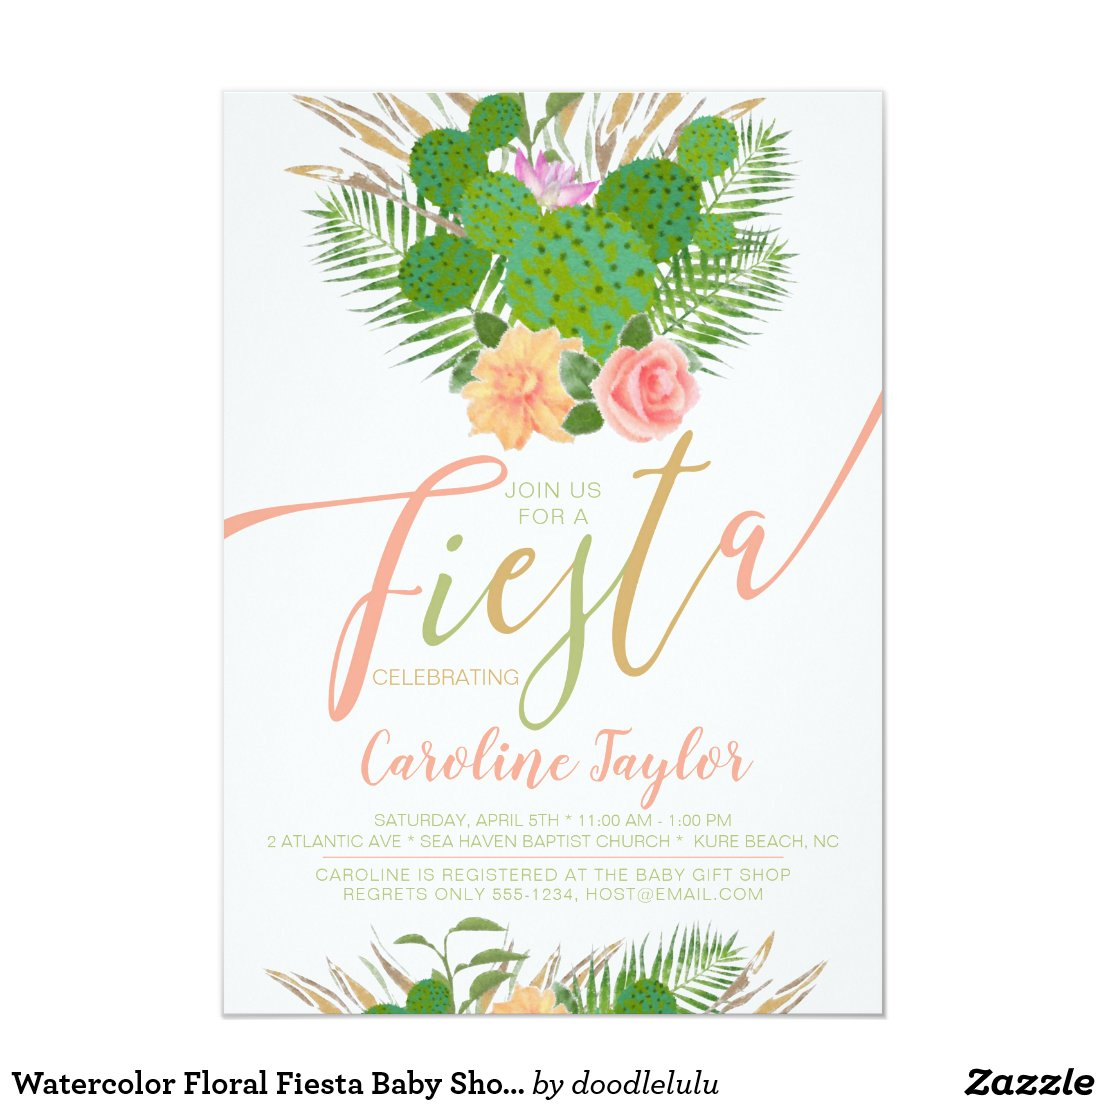 Watercolor Floral Fiesta Baby Shower Invitation